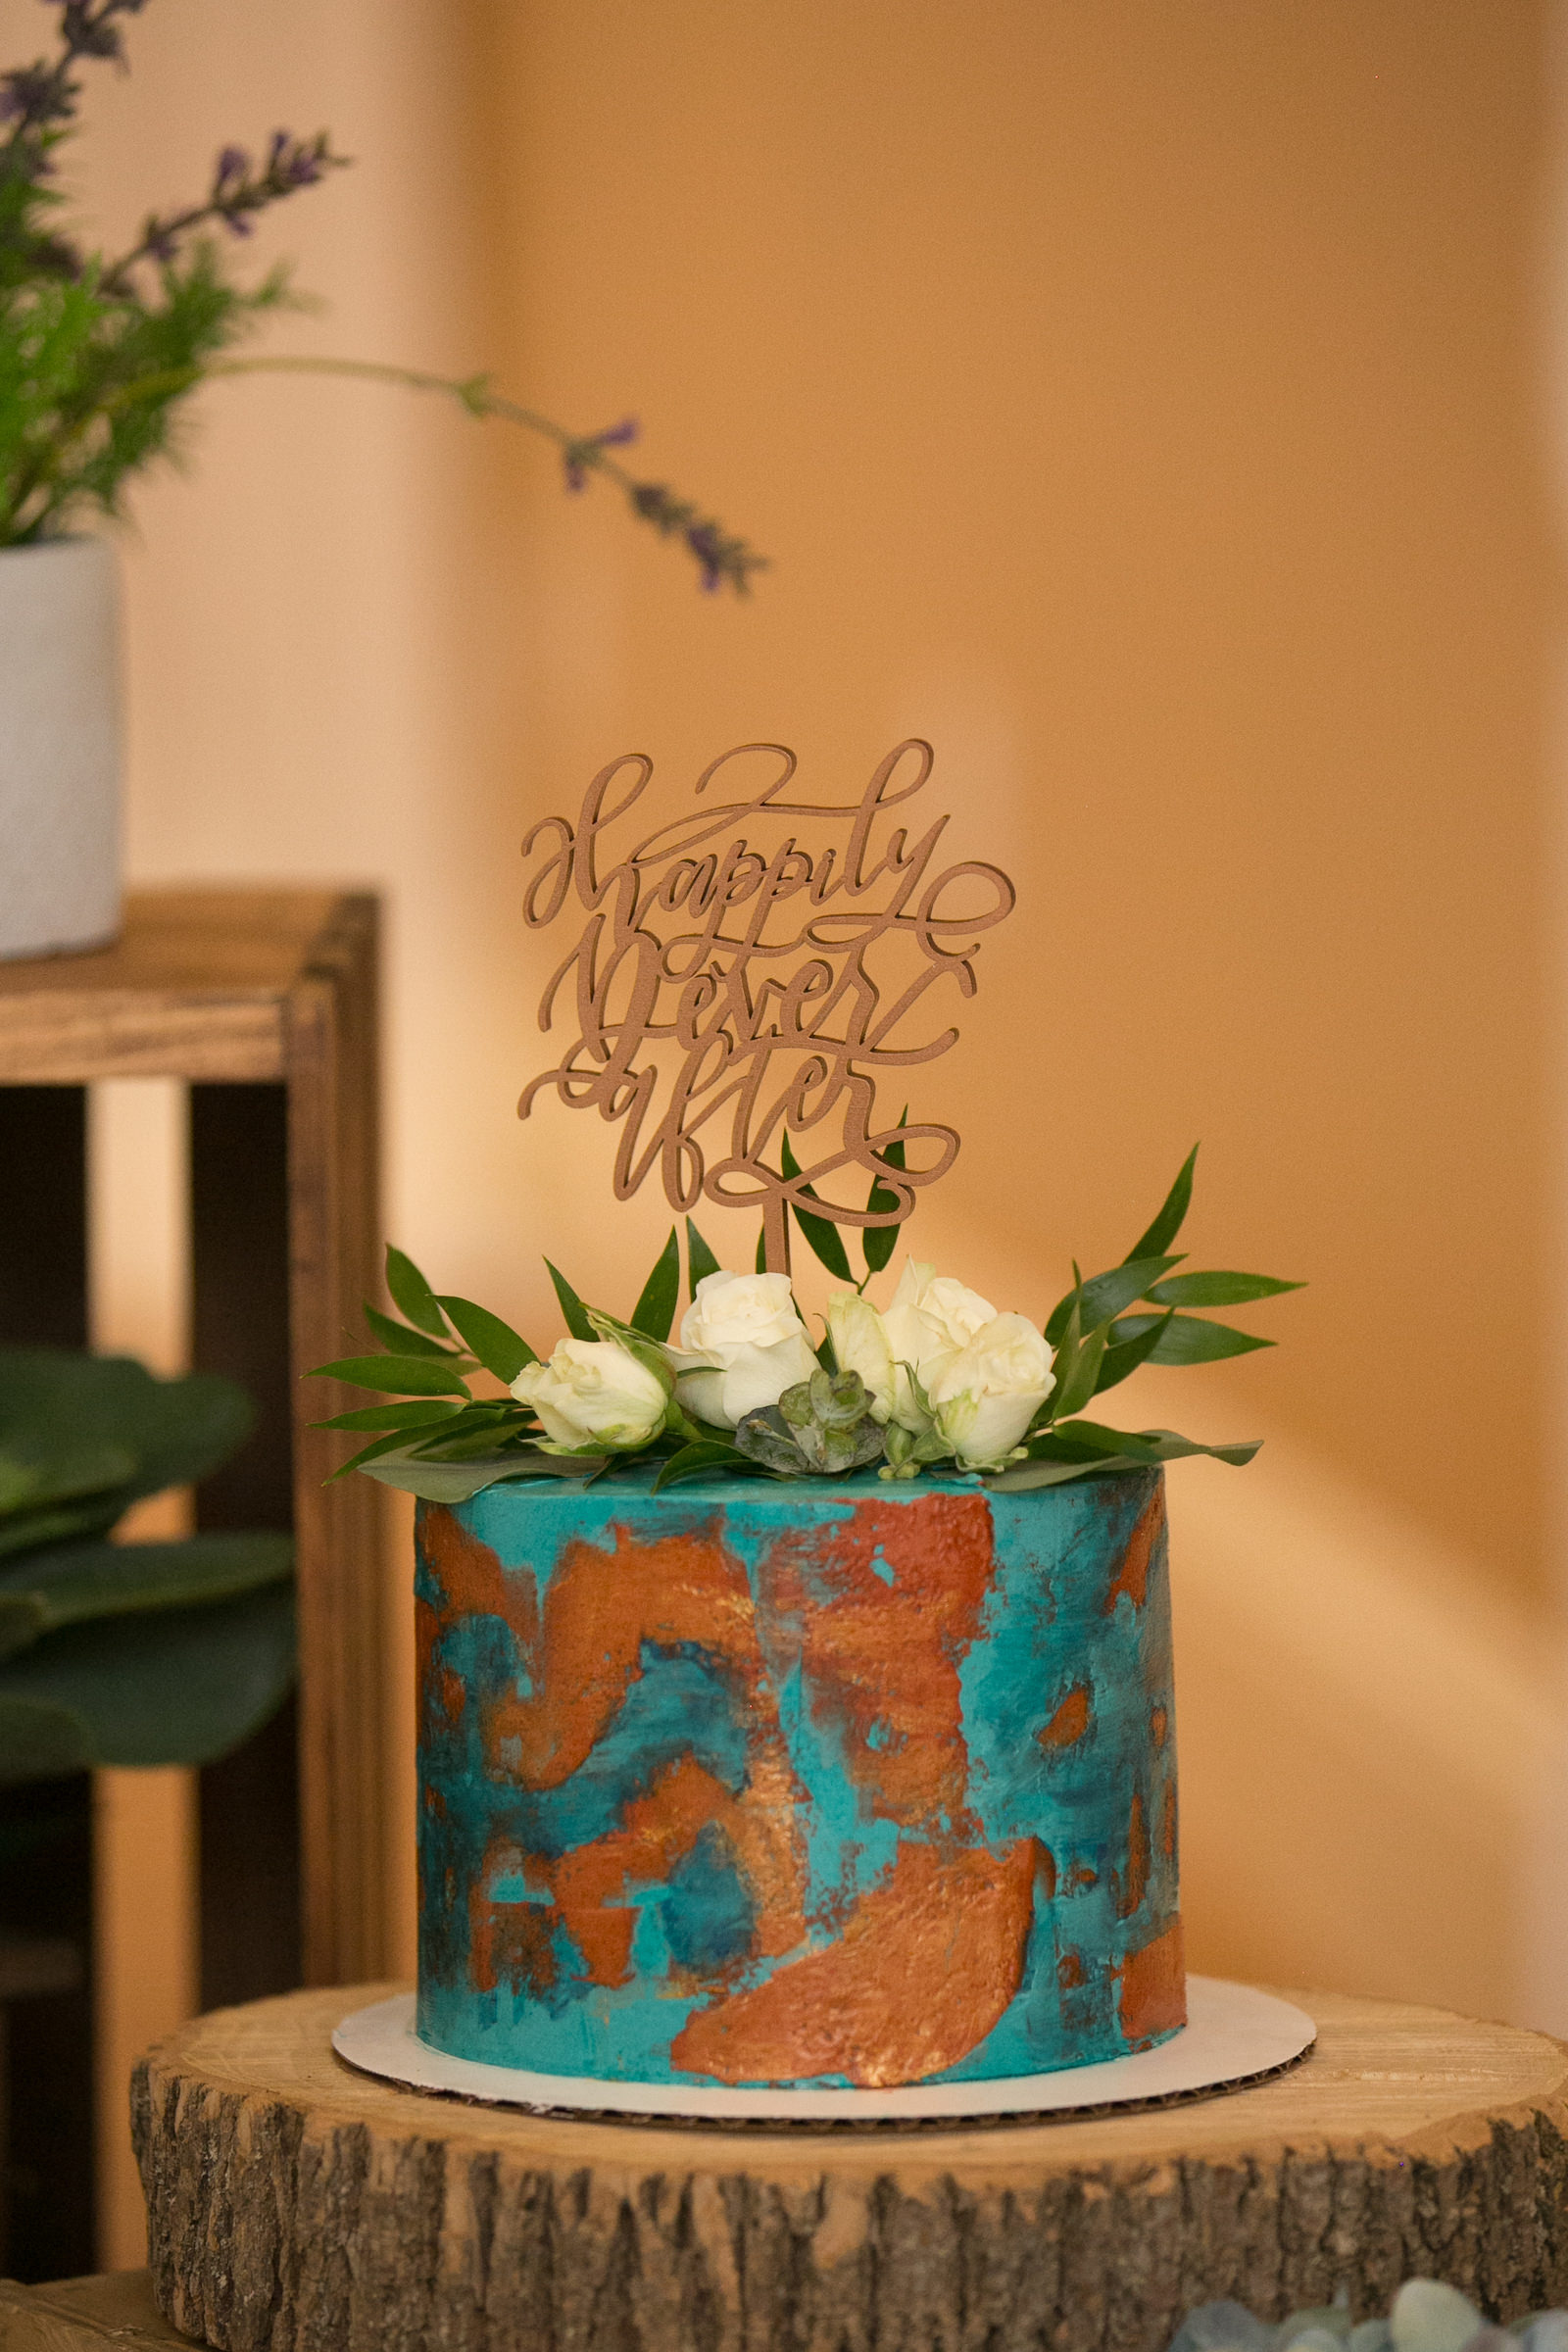 Unique One Tier Blue Teal Patina and Copper Painted Wedding Cake with White Roses and Greenery and Laser Cut Custom Cake Topper | Wedding Photographer Carrie Wildes Photography